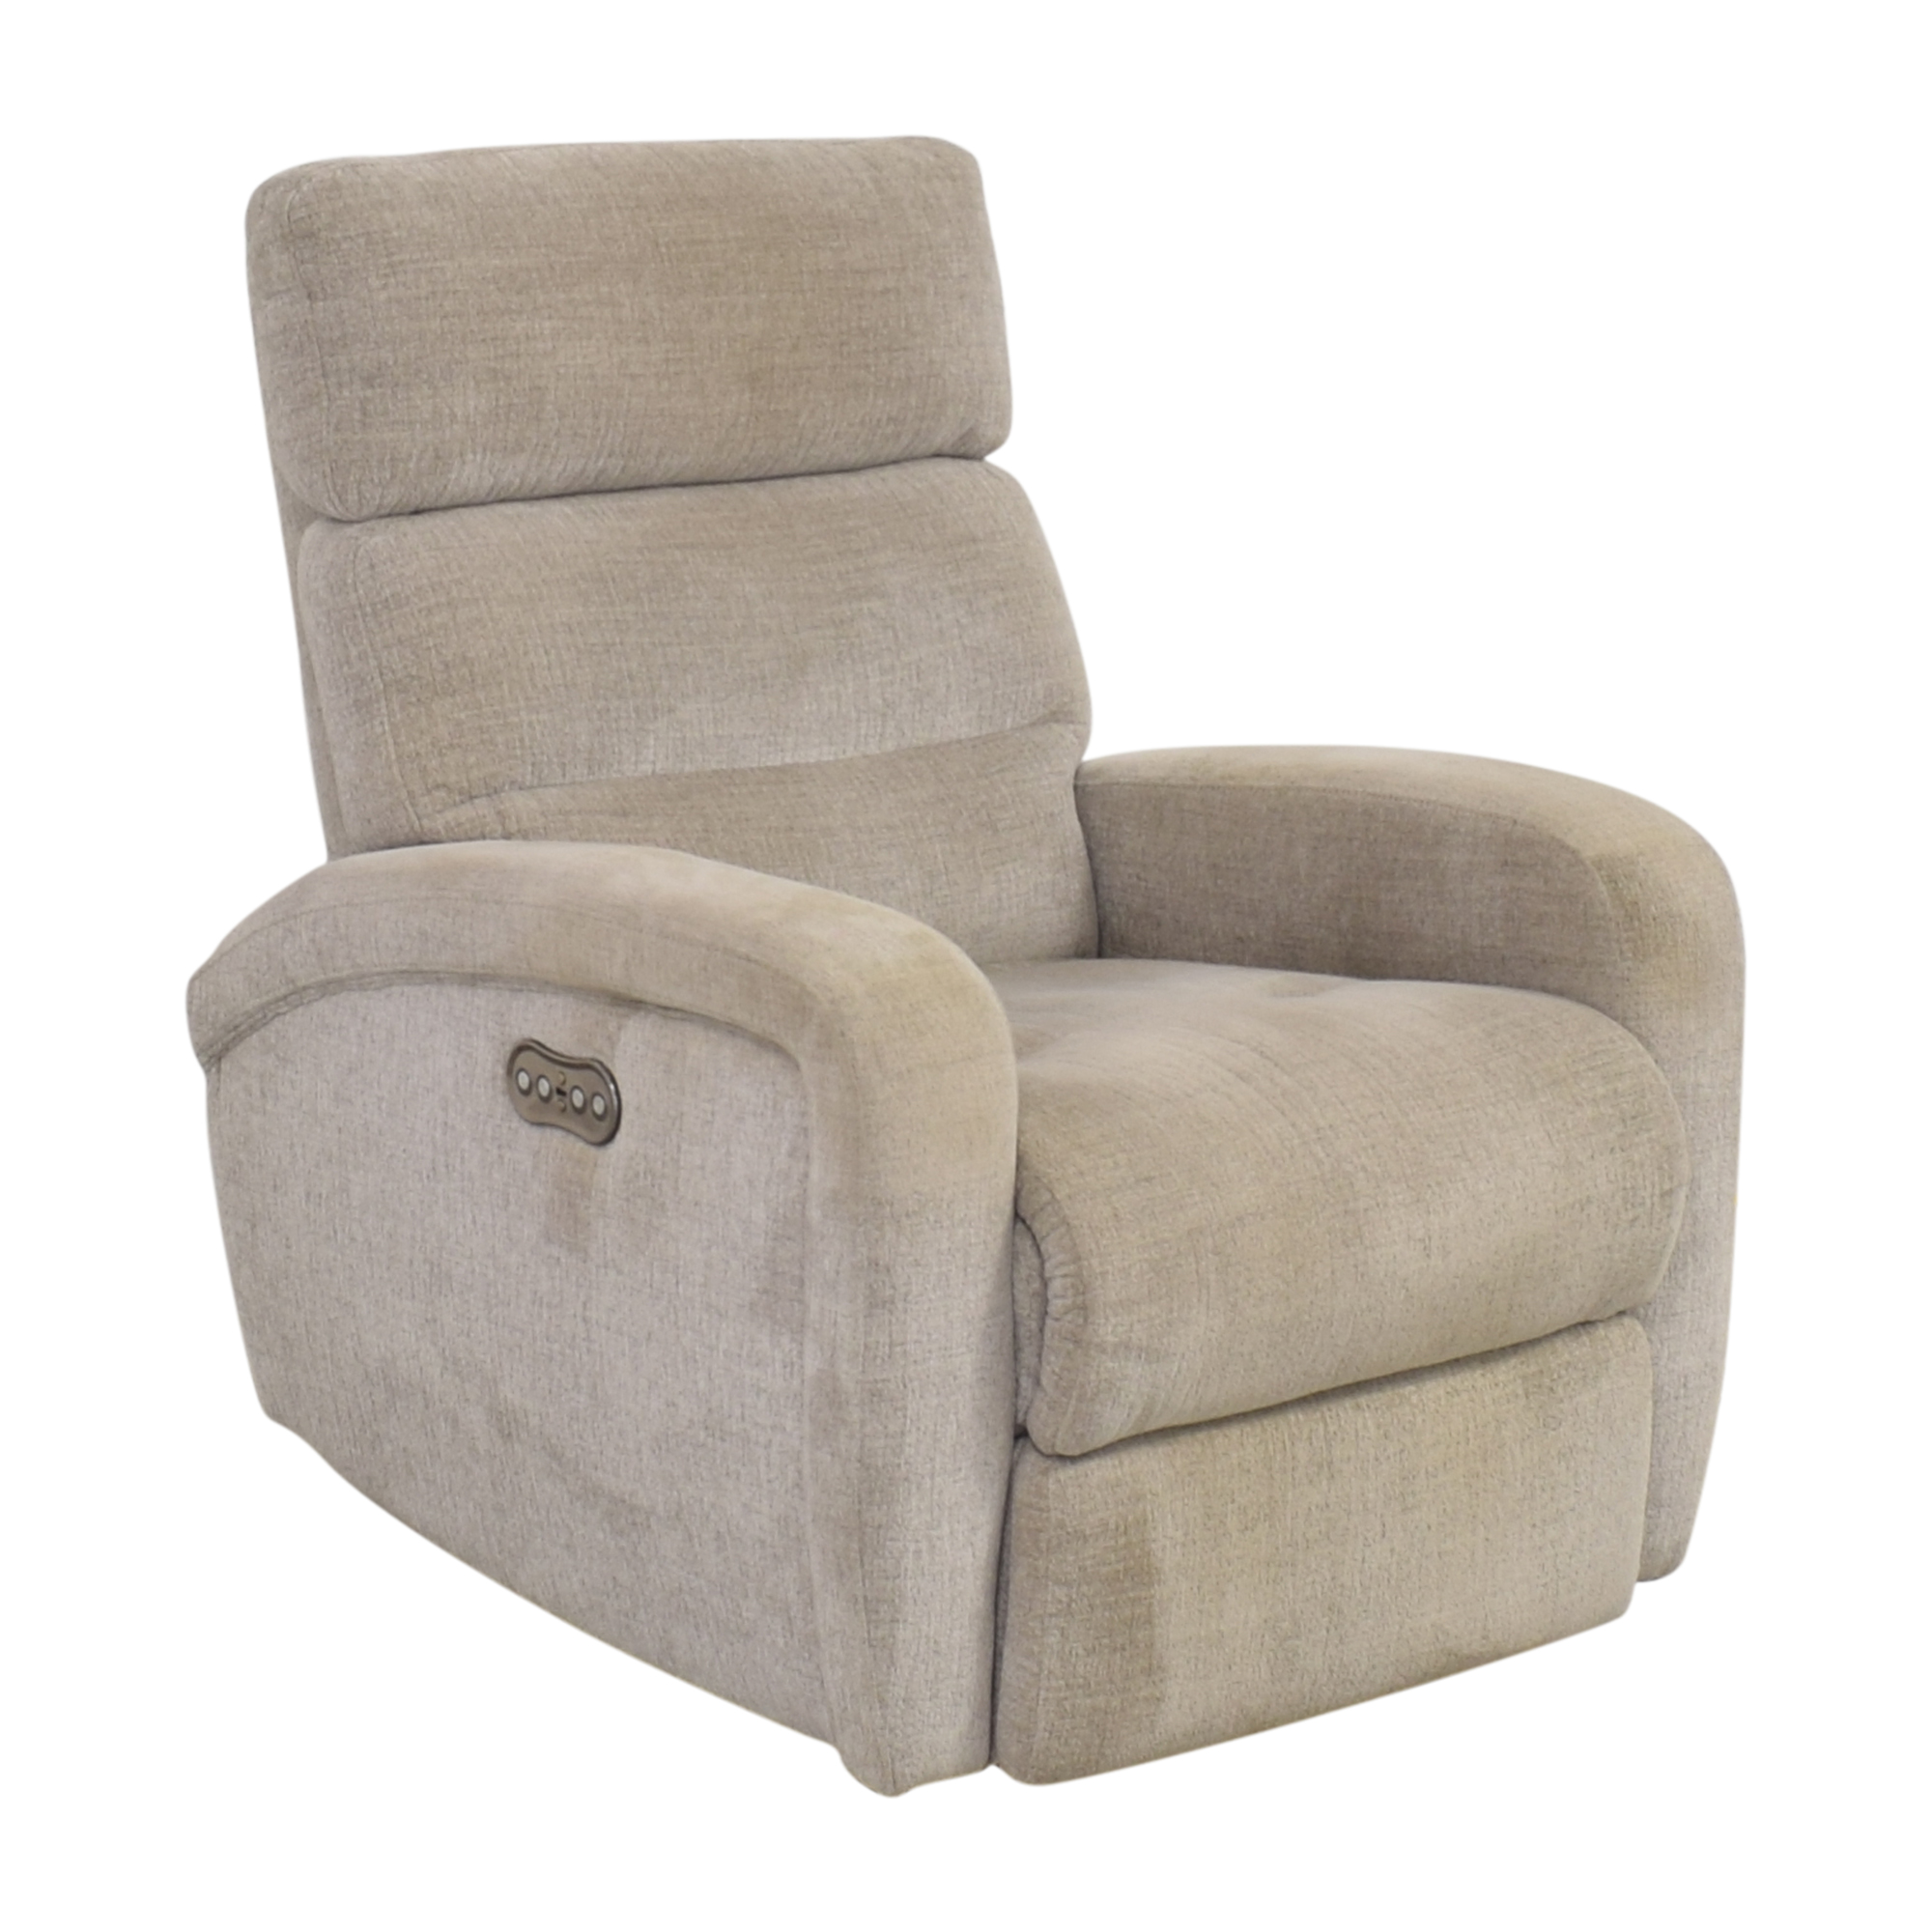 Macy's Macy's Stellarae Fabric Power Recliner price